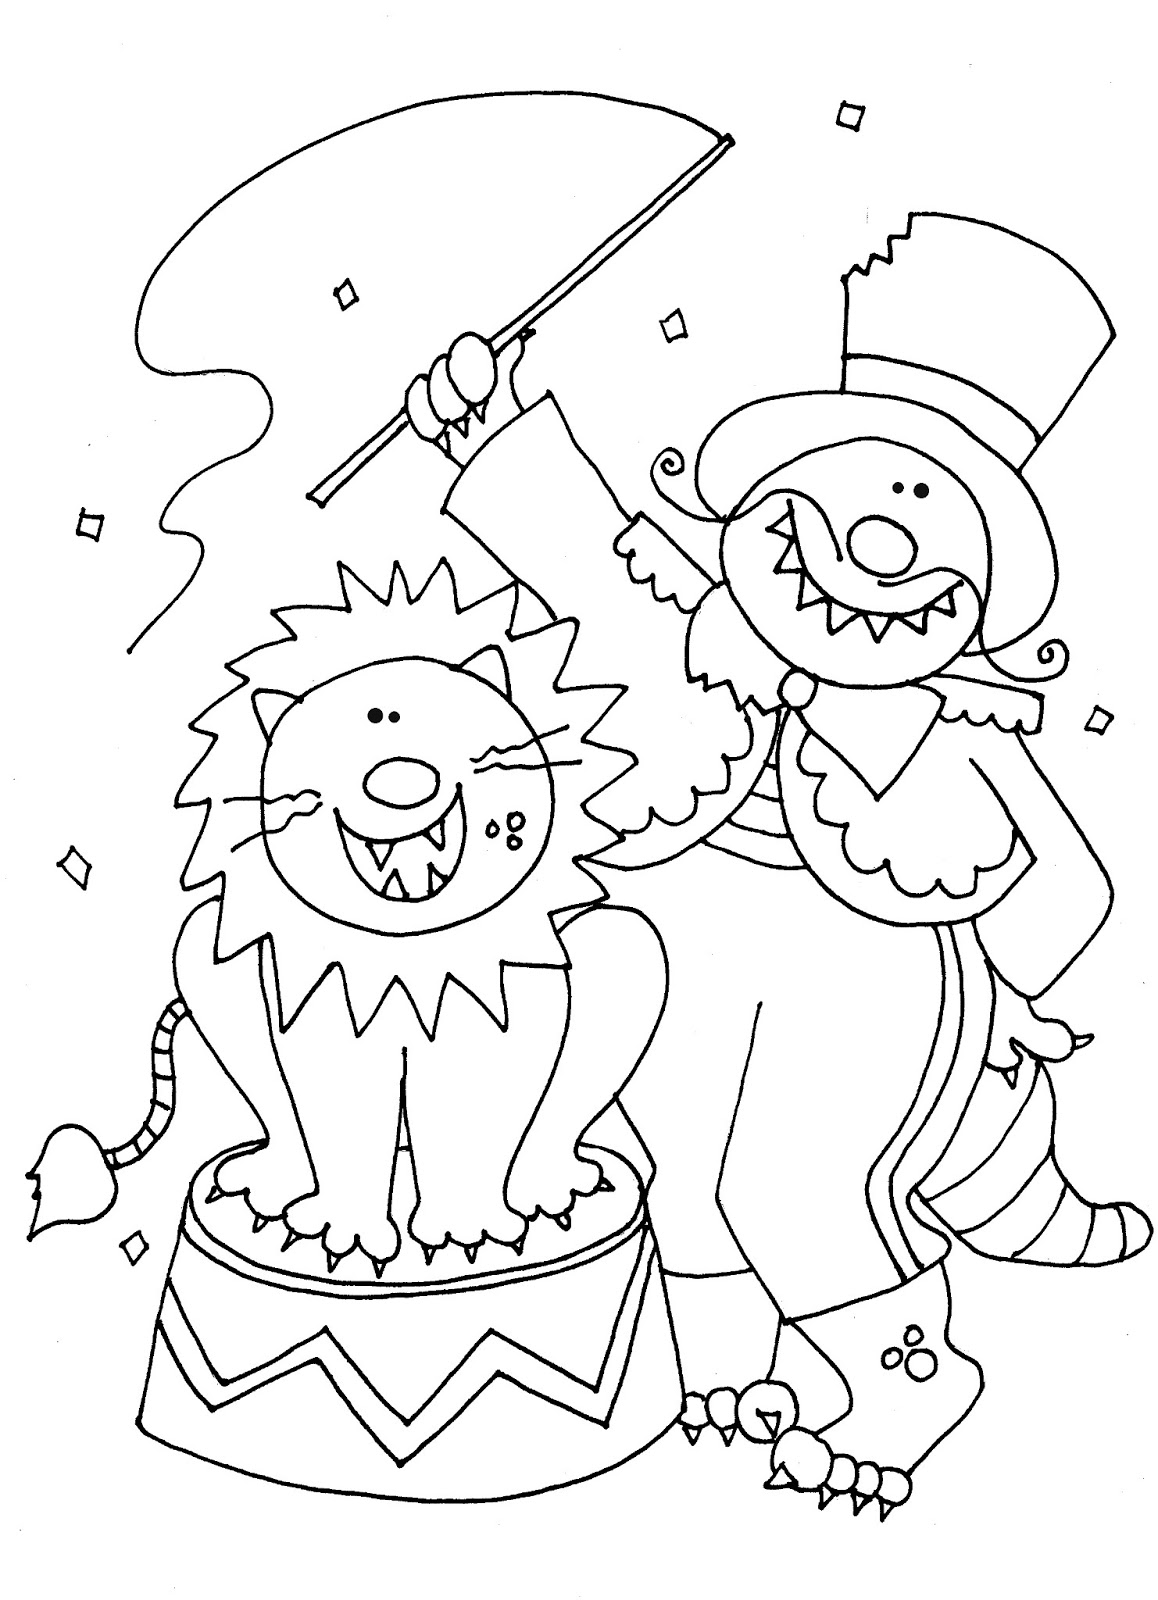 Free dearie dolls digi stamps circus lion taming beast for Printable circus coloring pages